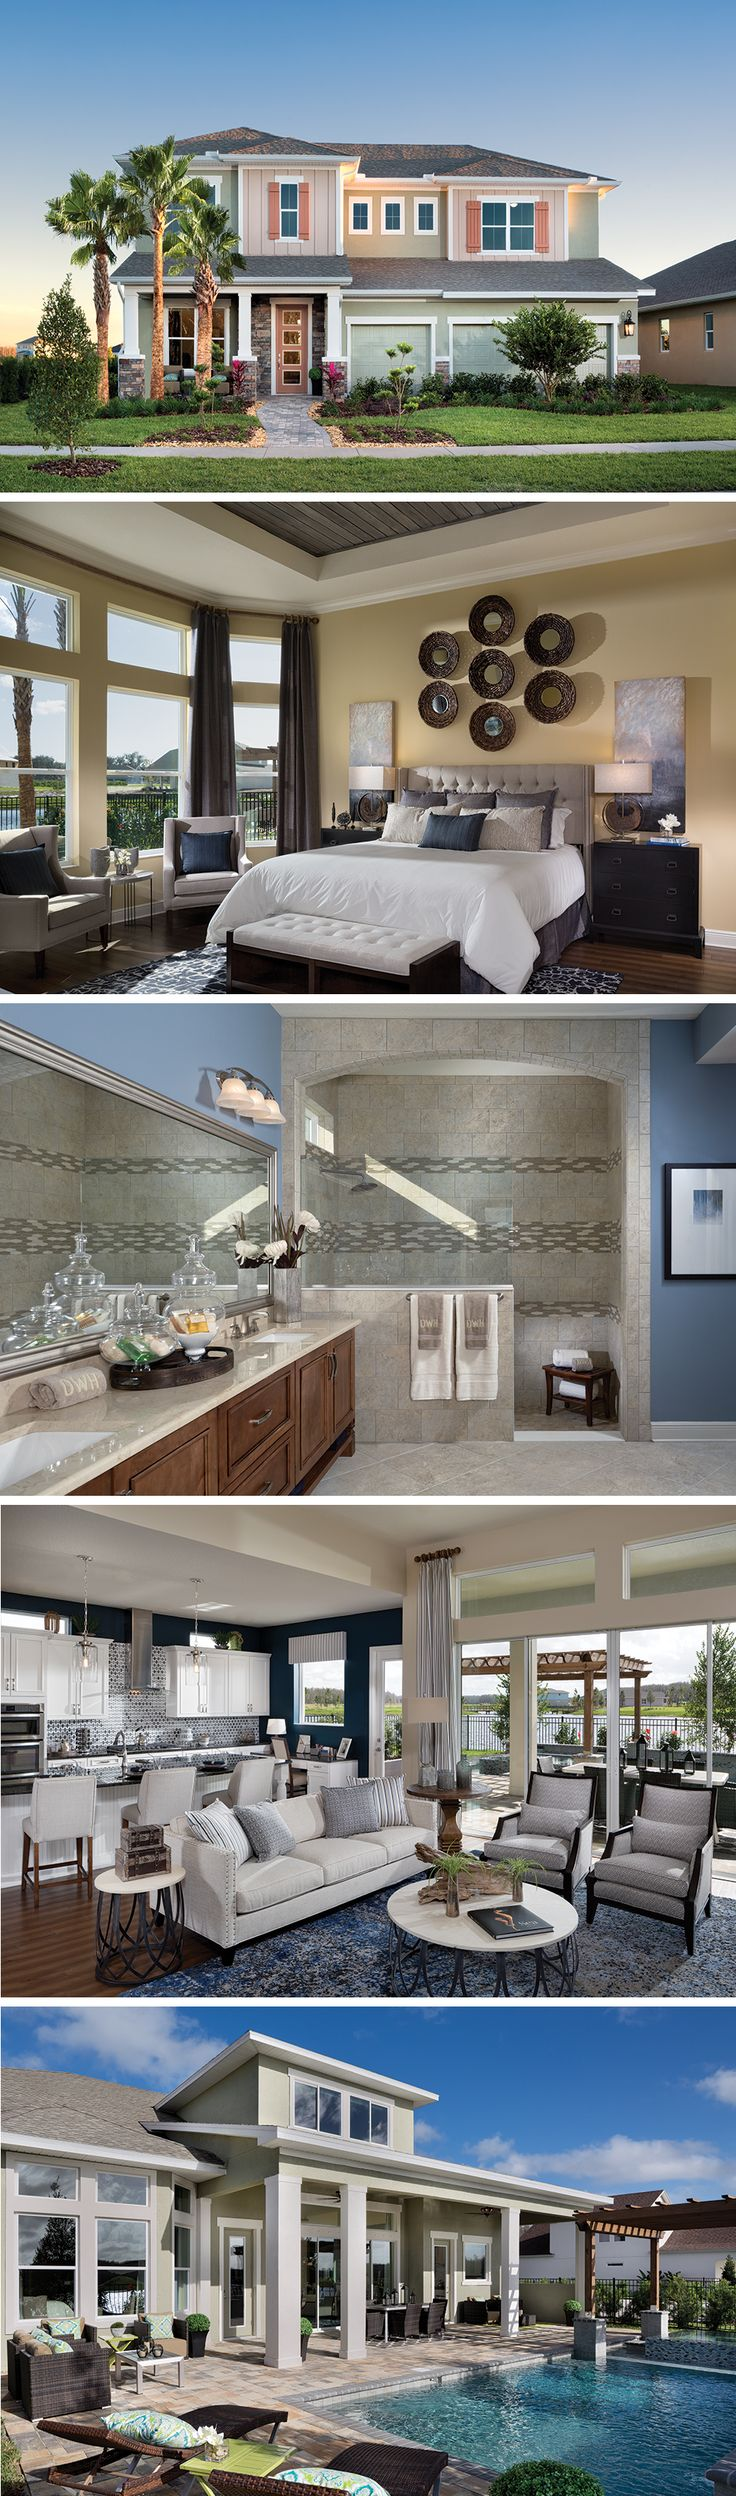 The Norchester by David Weekley Homes in Asturia is a custom home that features a lanai, an open kitchen and family room, and an owners retreat with tray ceilings. Custom home options include a bay window in the owners retreat, an extended lanai or a media room on the second story.